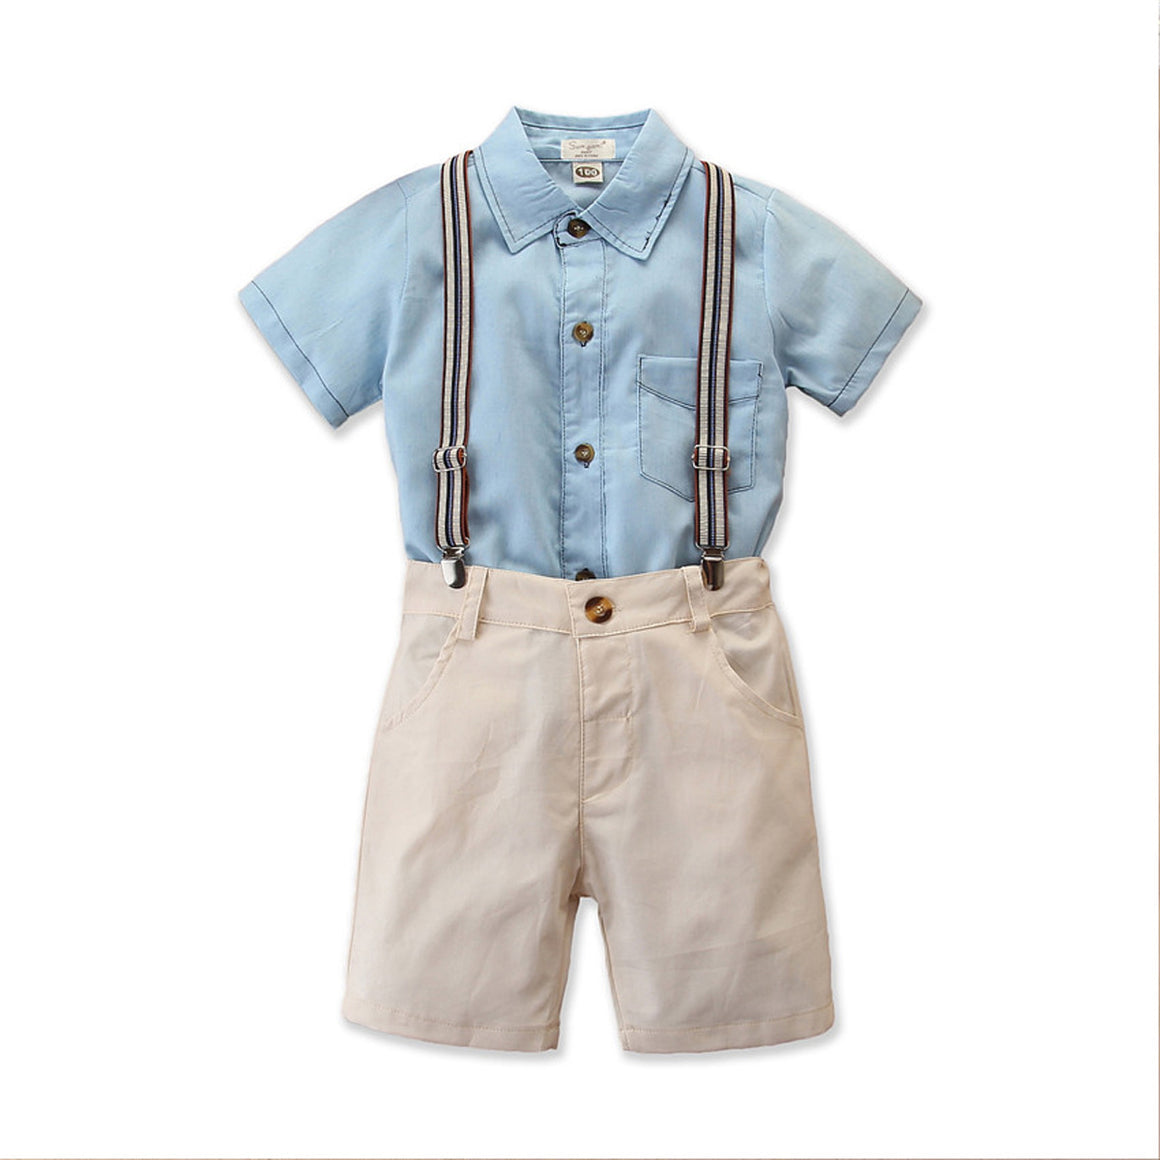 Hudson Shirt & Shorts Suspenders Set